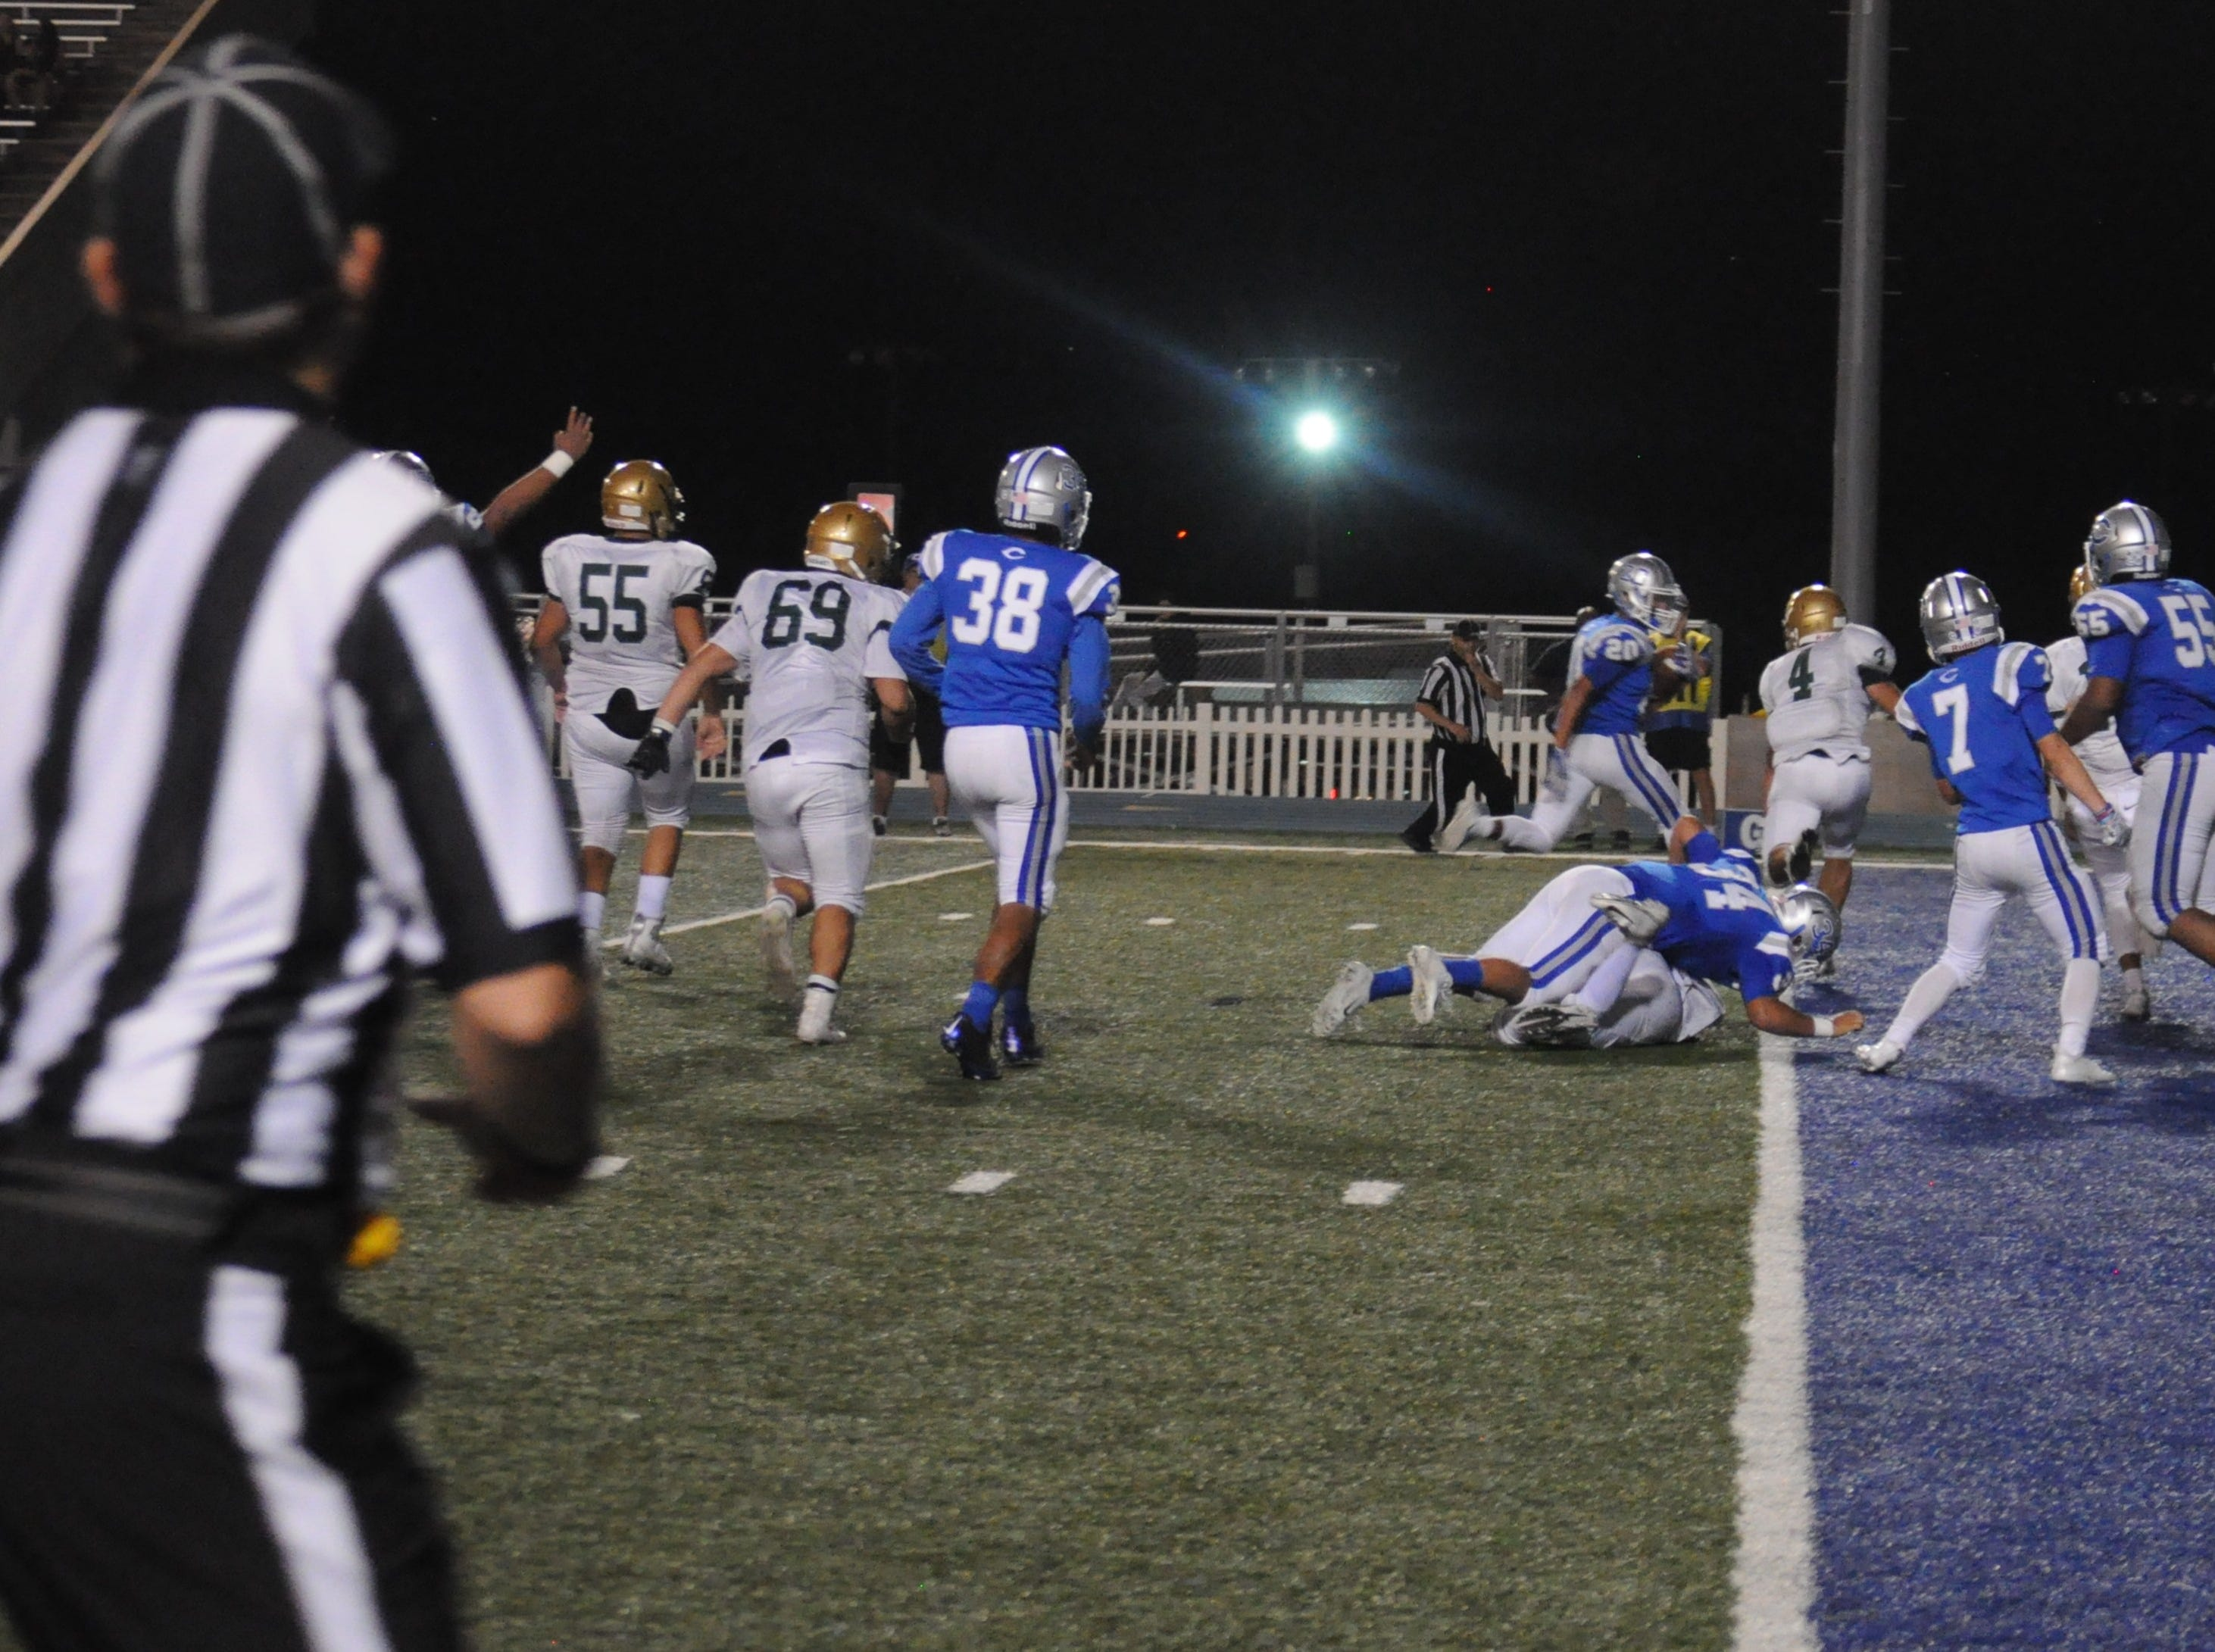 A Cavemen touchdown puts Carlsbad in a solid lead in the second half of the game against Atrisco Heritage Jaguars.